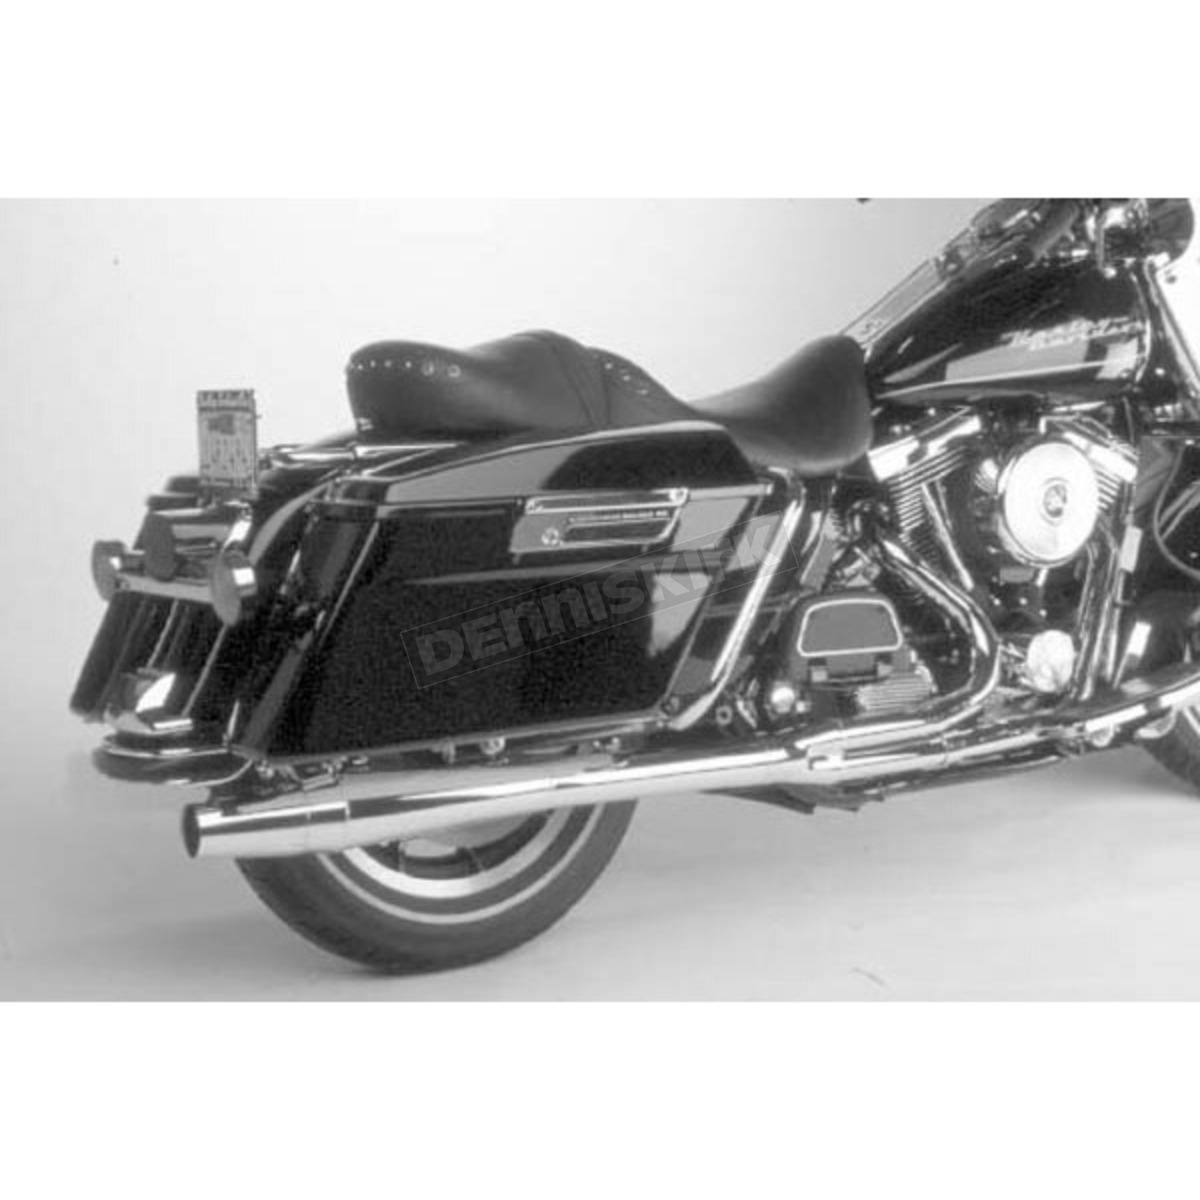 Chrome Long Style High-Performance 2-Into-1 Exhaust System with Heat  Shields - 1024S